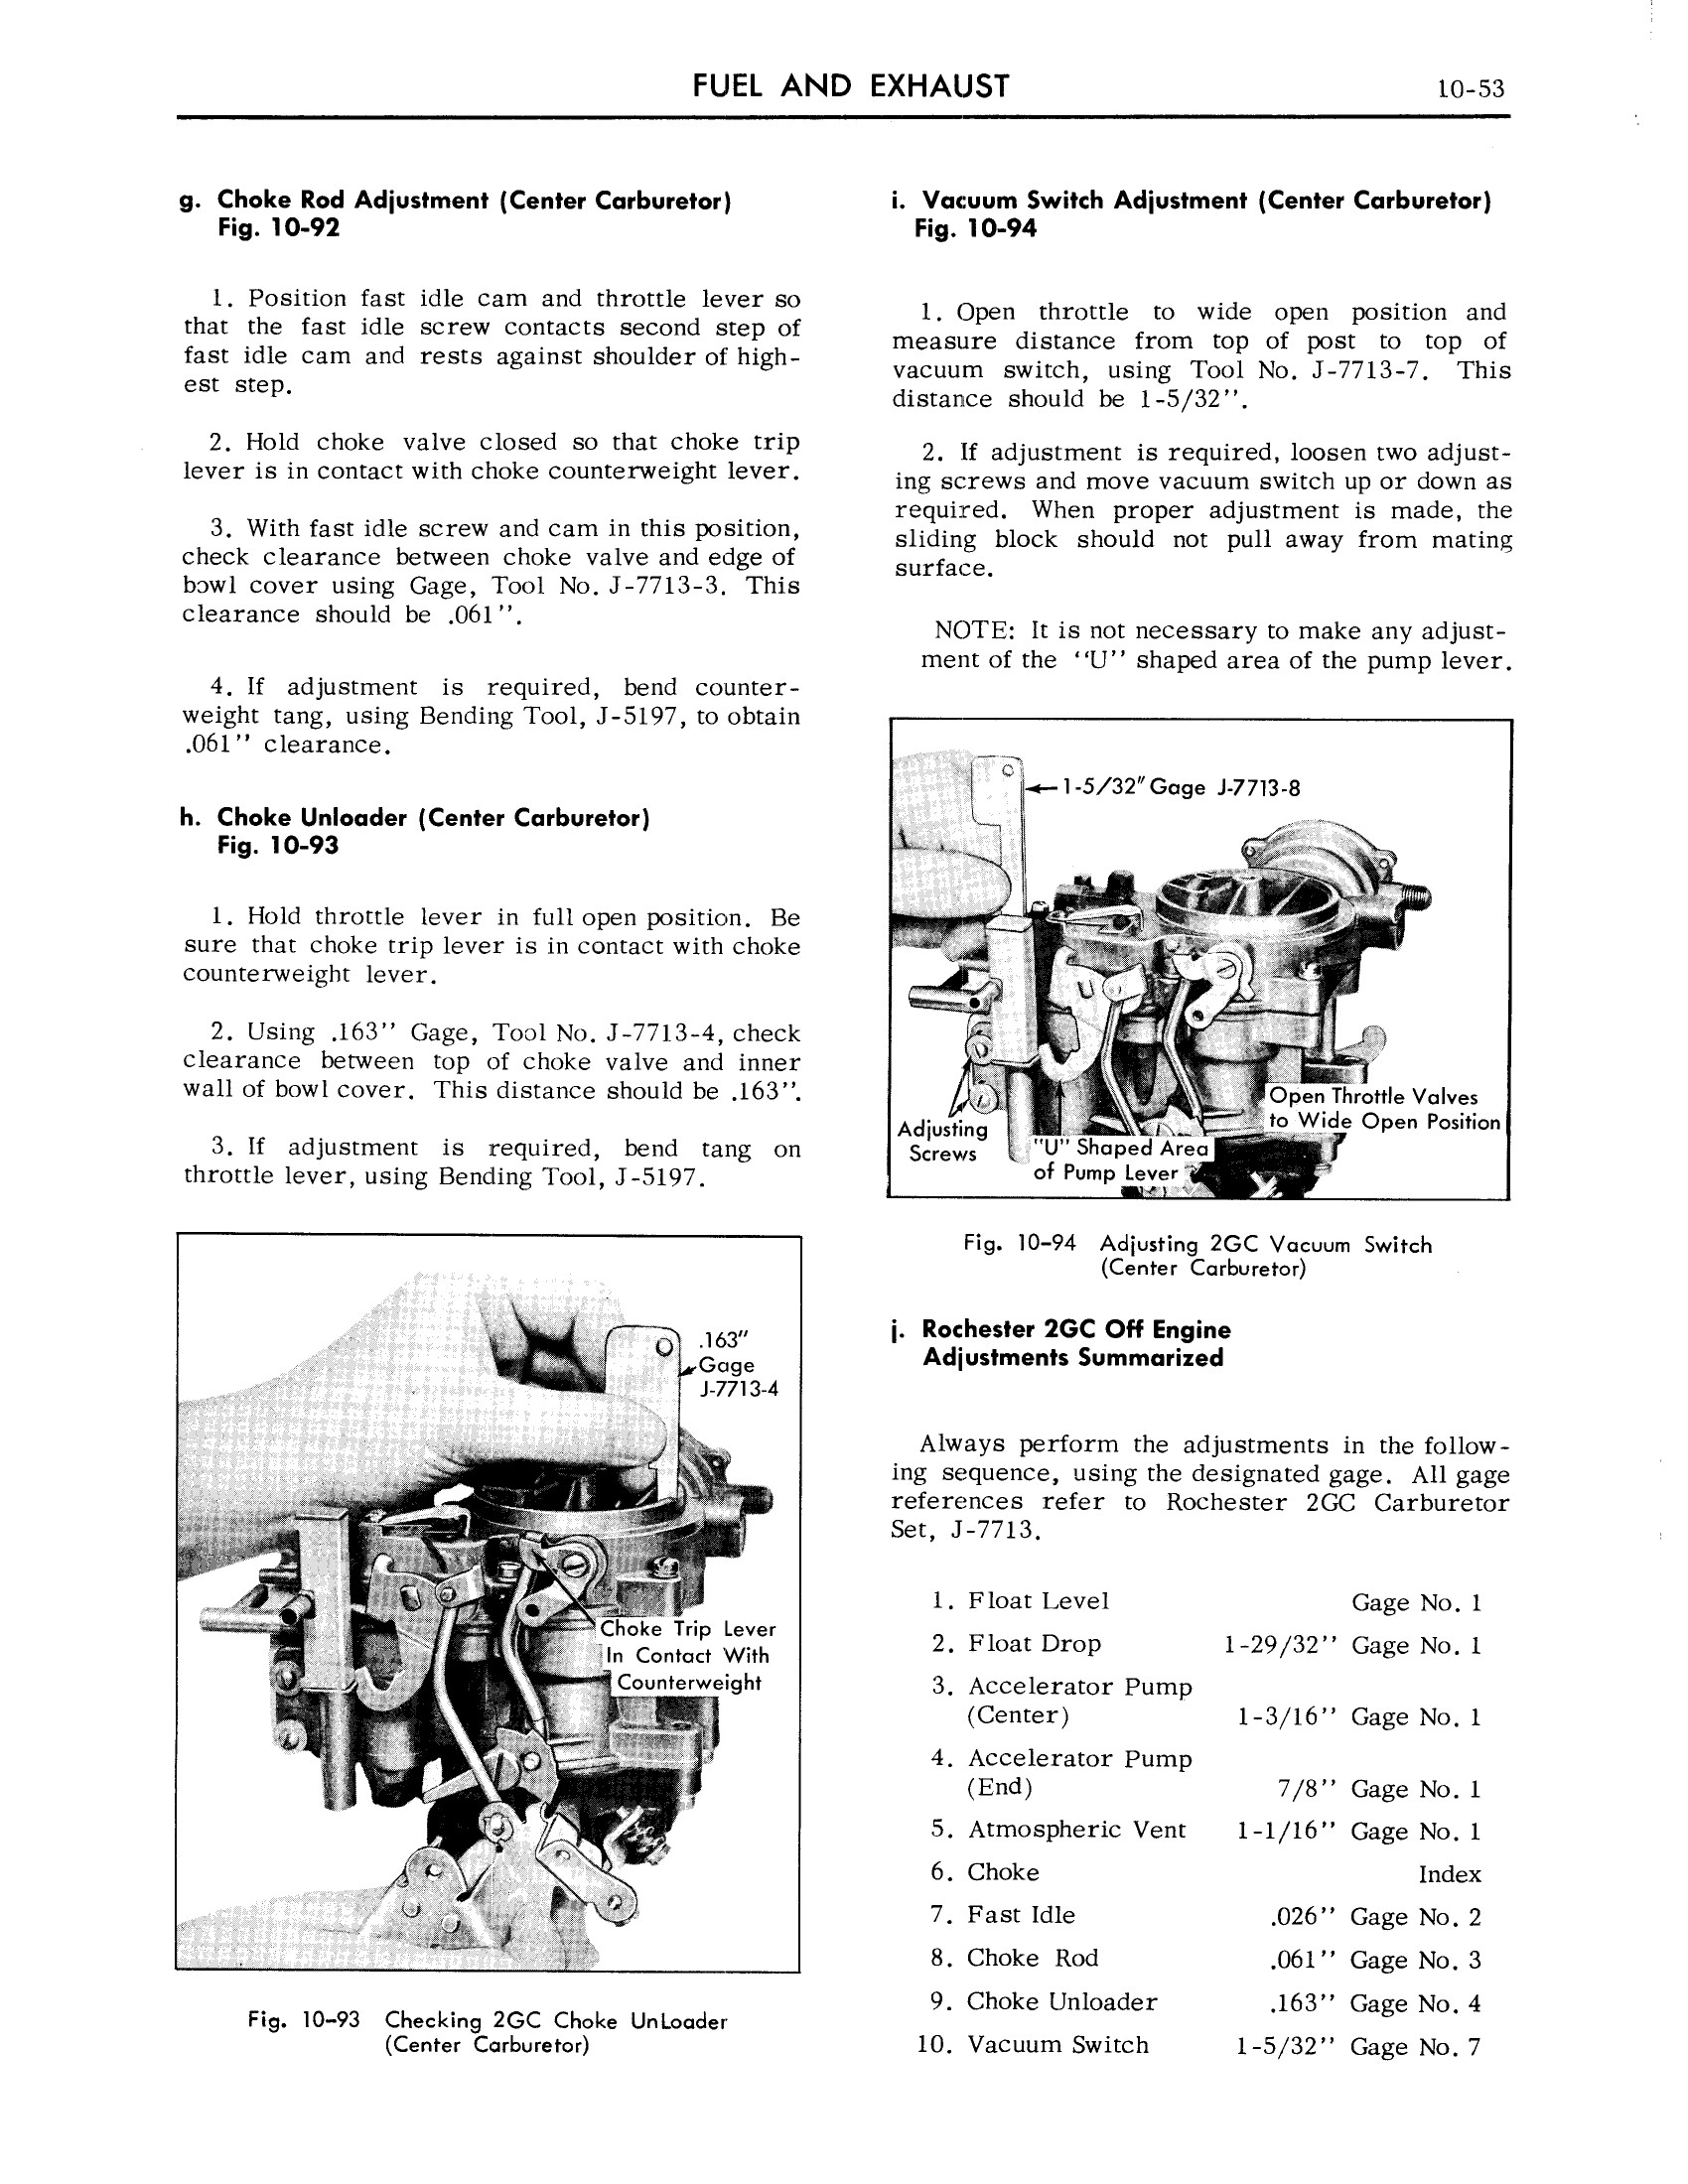 1959 Cadillac Shop Manual- Engine Fuel and Exhaust Page 53